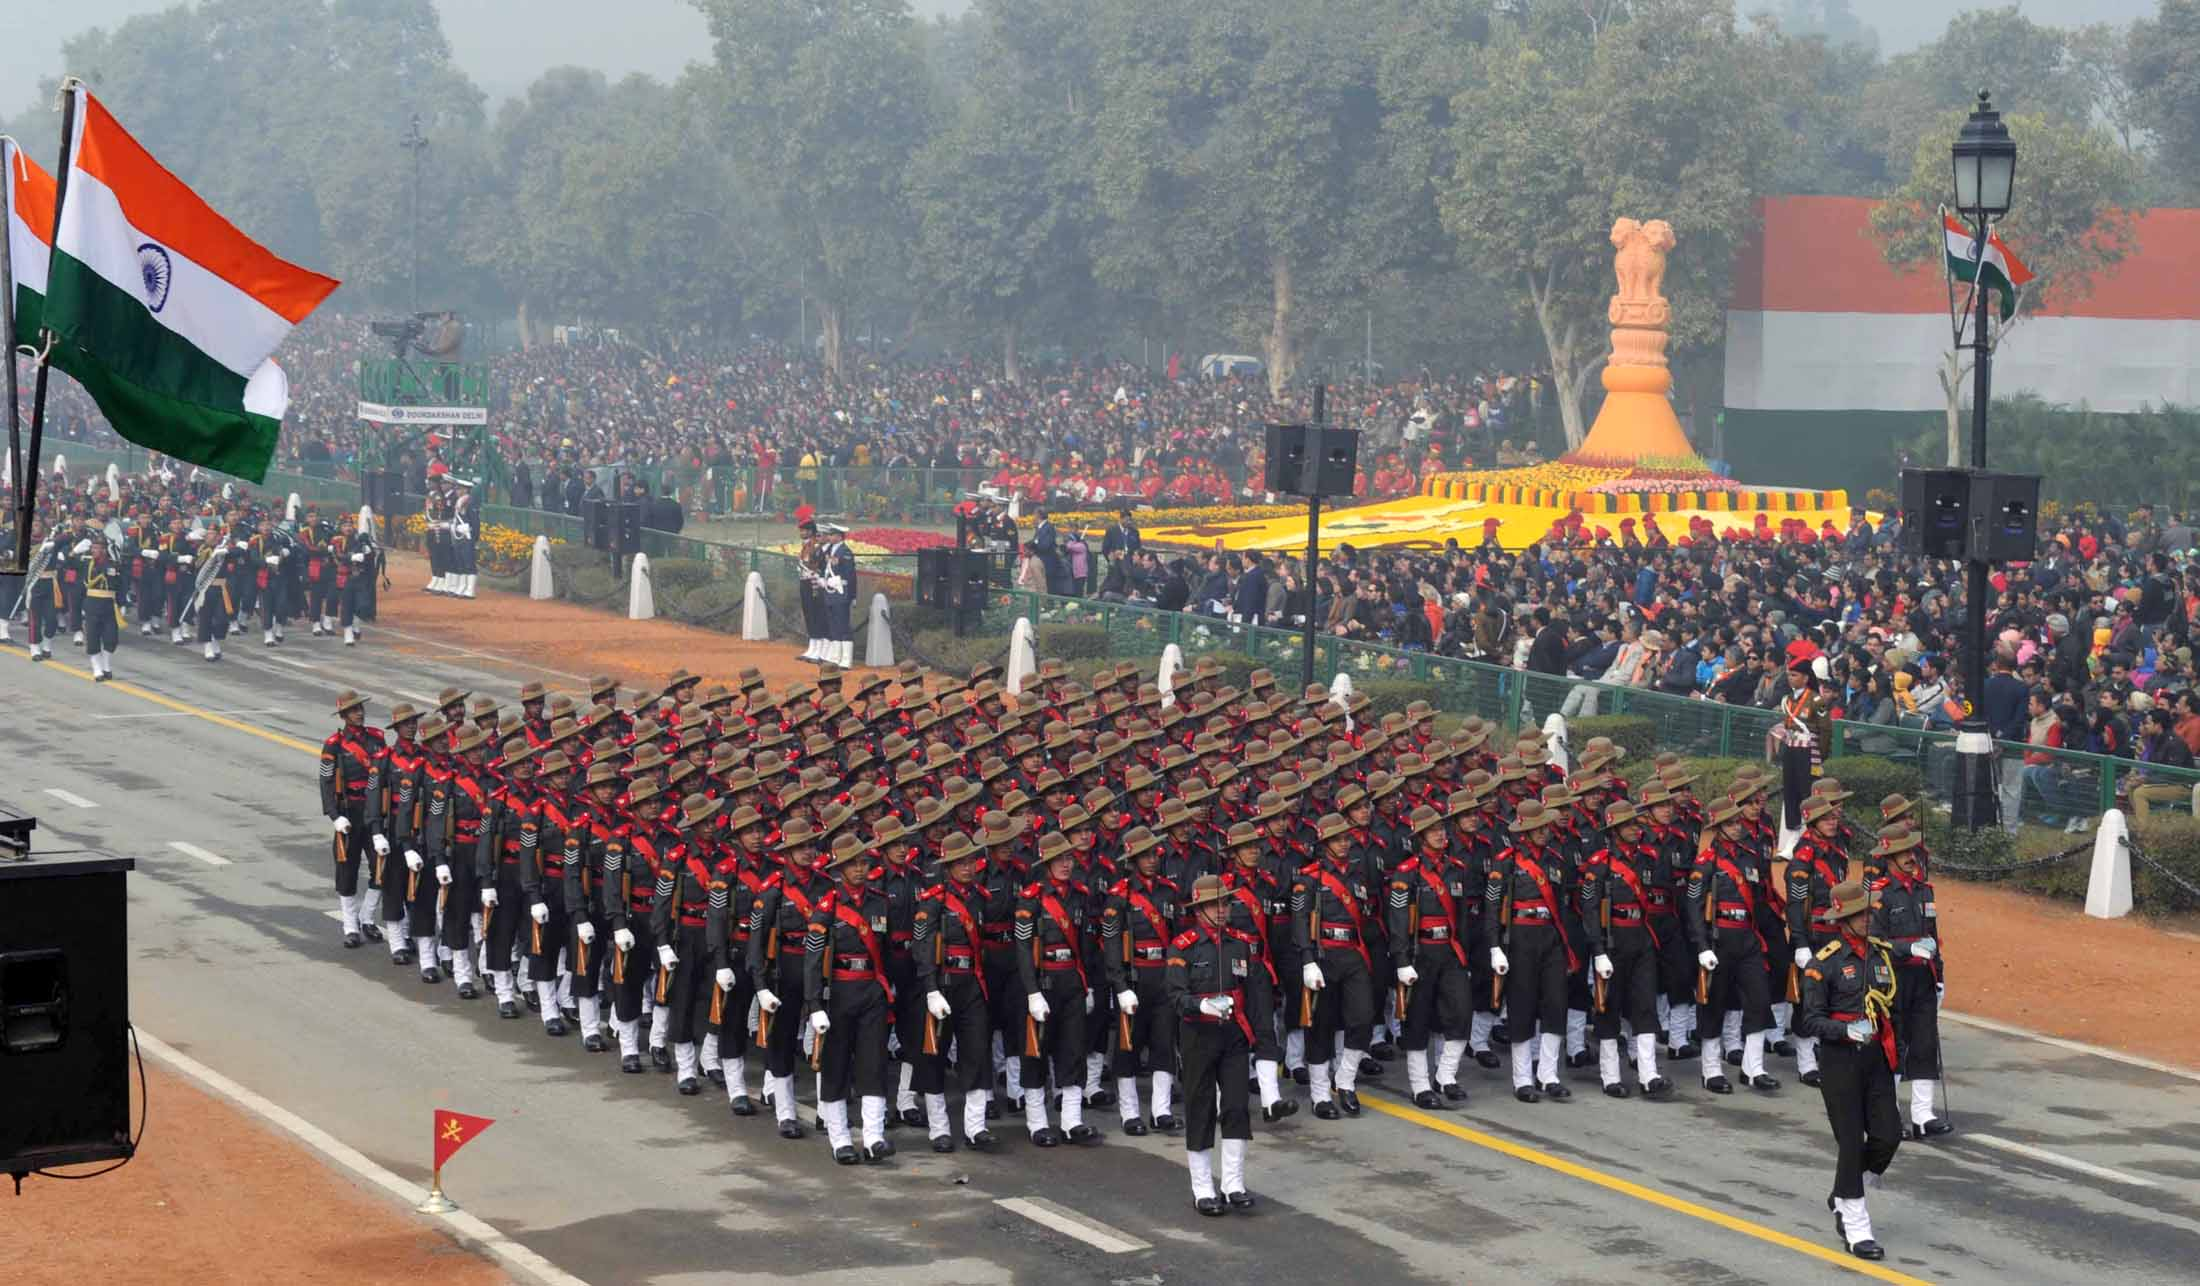 India exhibits military prowess, cultural diversity at grand Republic Day parade